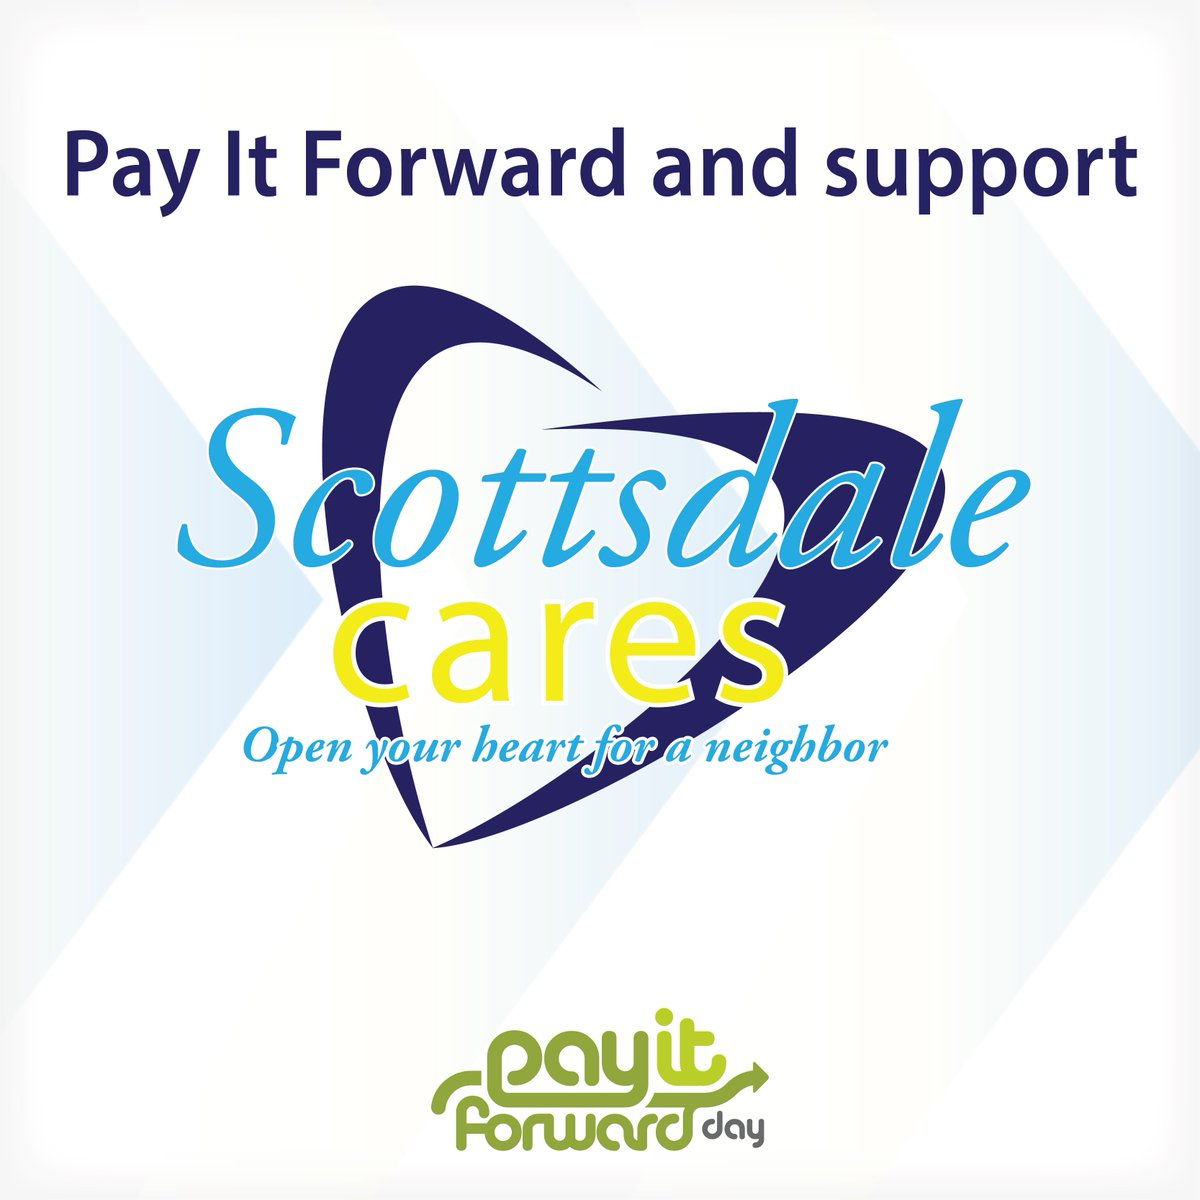 Money. Moolah. Dinero. Bucks. No matter how you say it, it all adds up to one thing...helping those in need. #PayItForward by donating to Scottsdale Cares April 28. @PayItForwardDay https://t.co/HjZFPaBdXi https://t.co/i8lzWDwHQL